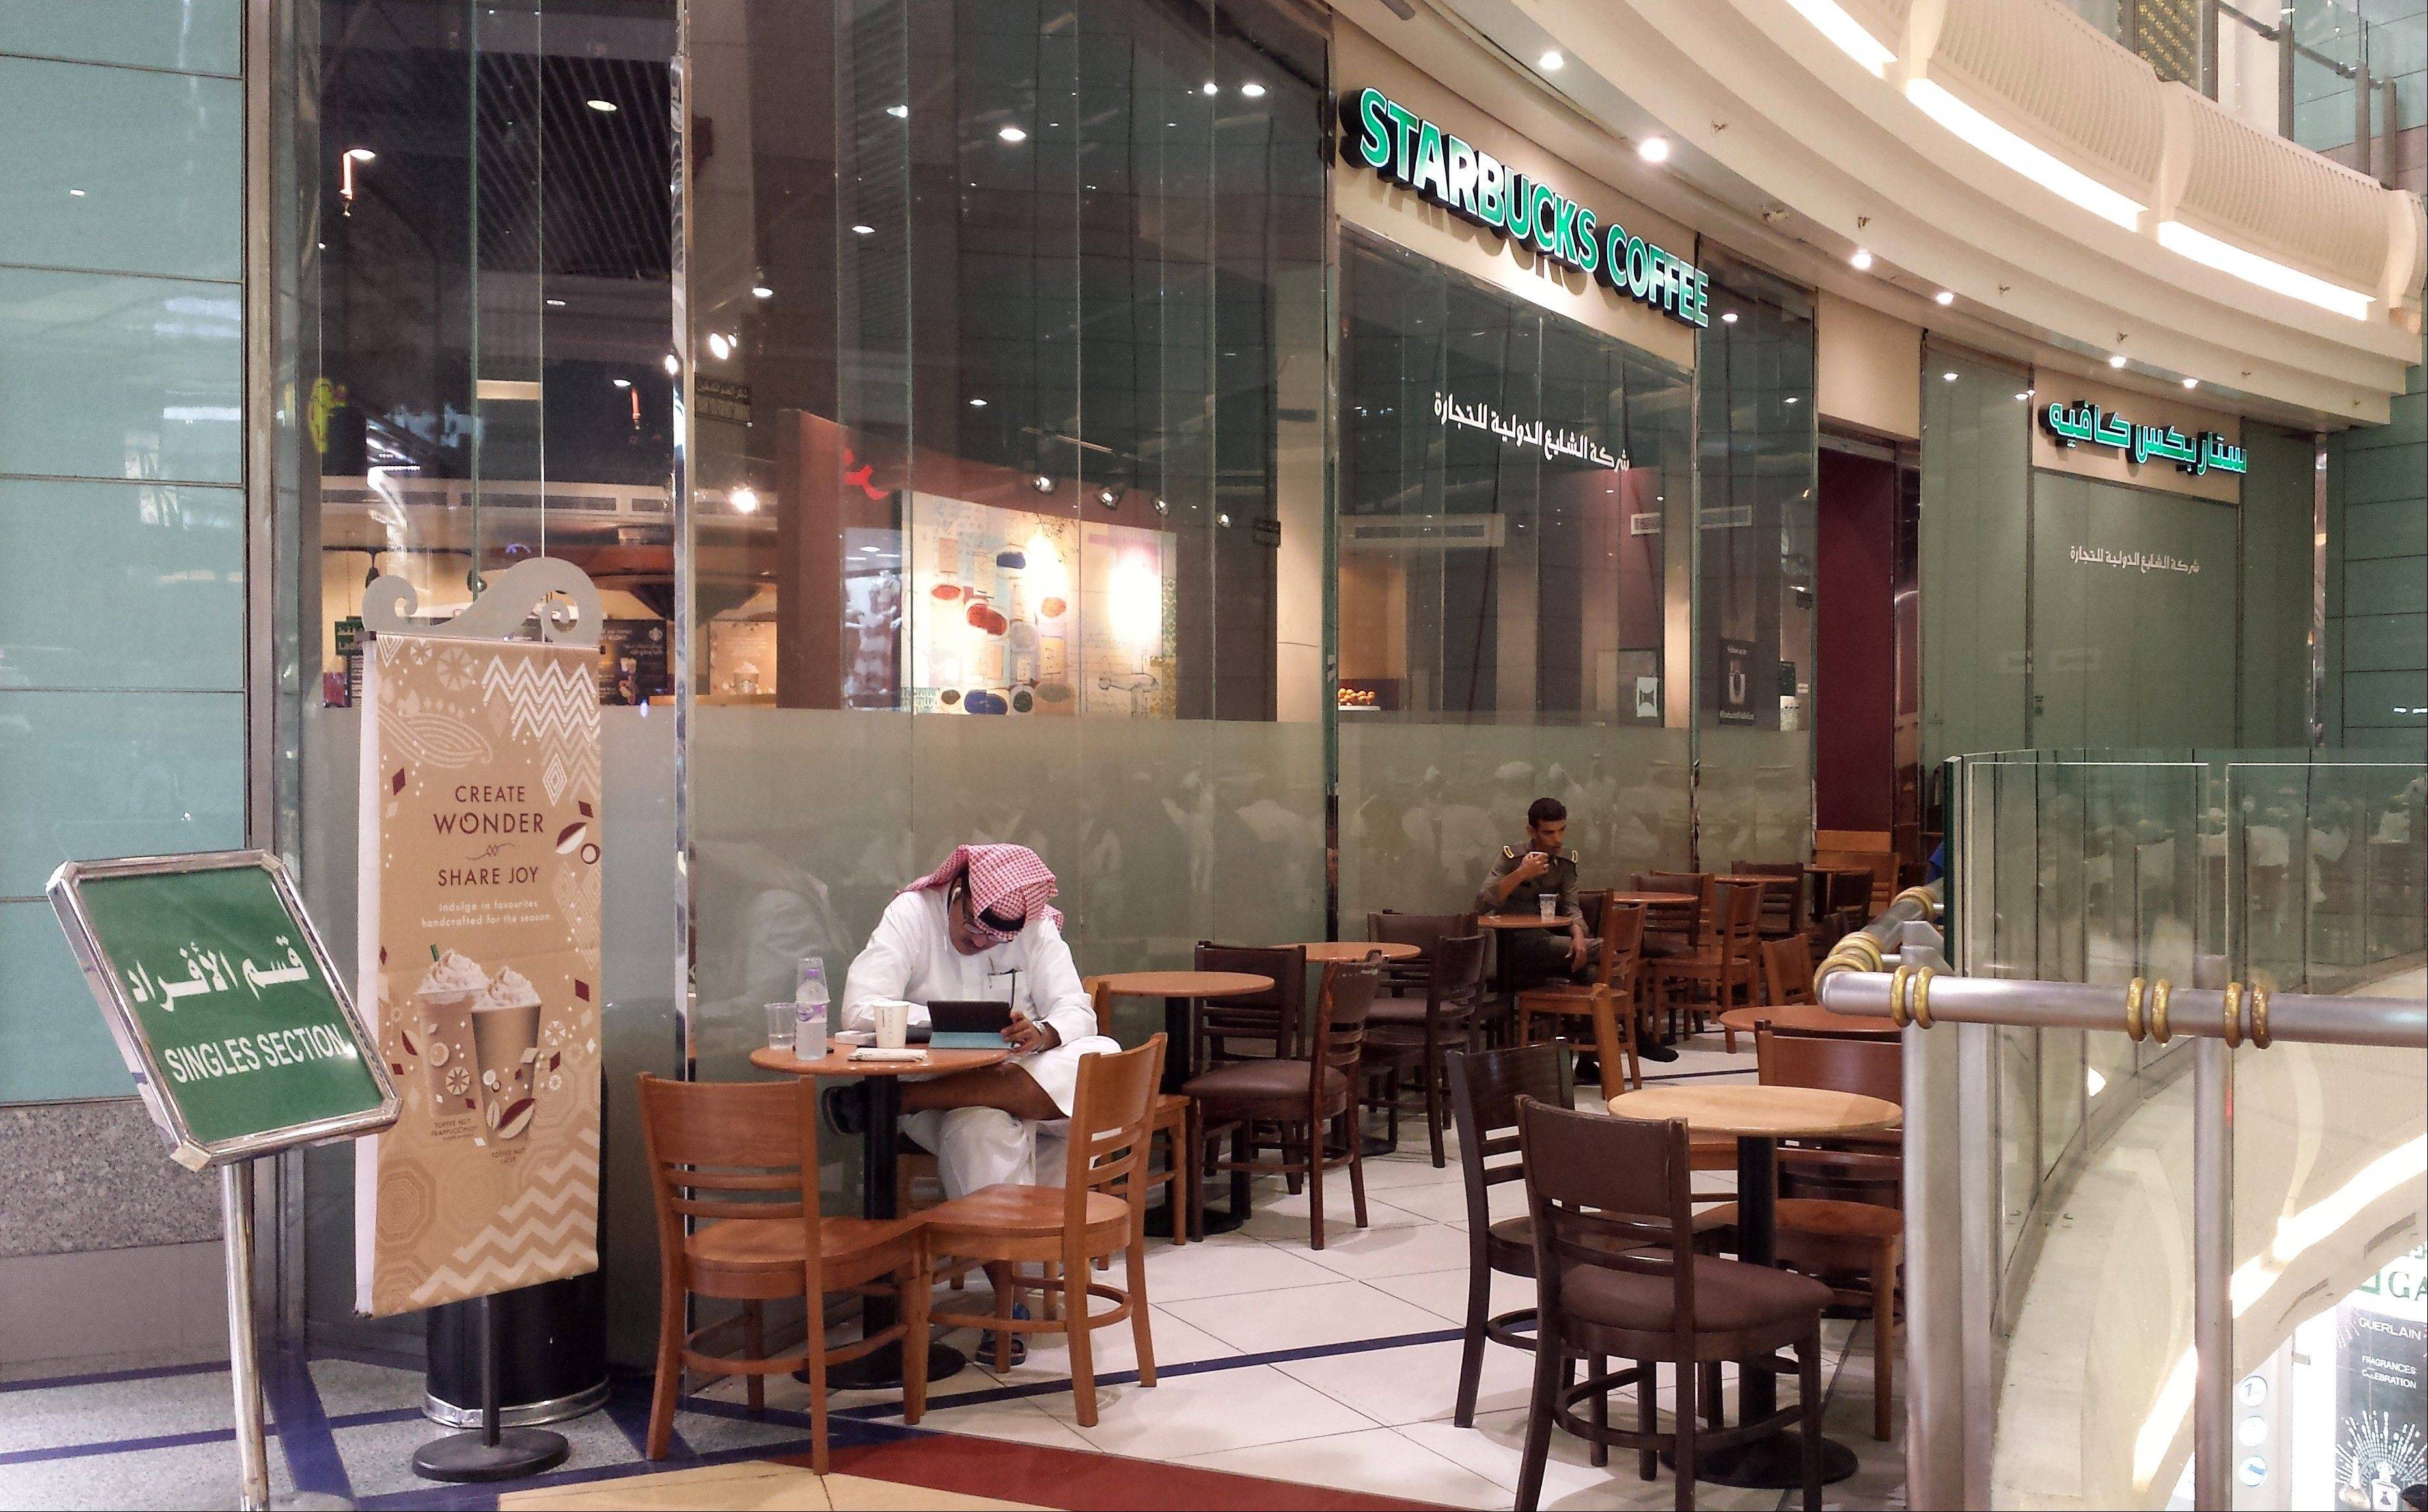 This is the singles' section, where men have separate entrances and seating areas from women, at a Starbucks cafe in Mecca, Saudi Arabia. Segregation of the sexes in Saudi Arabia extends beyond campuses and into nearly every aspect of daily activity.